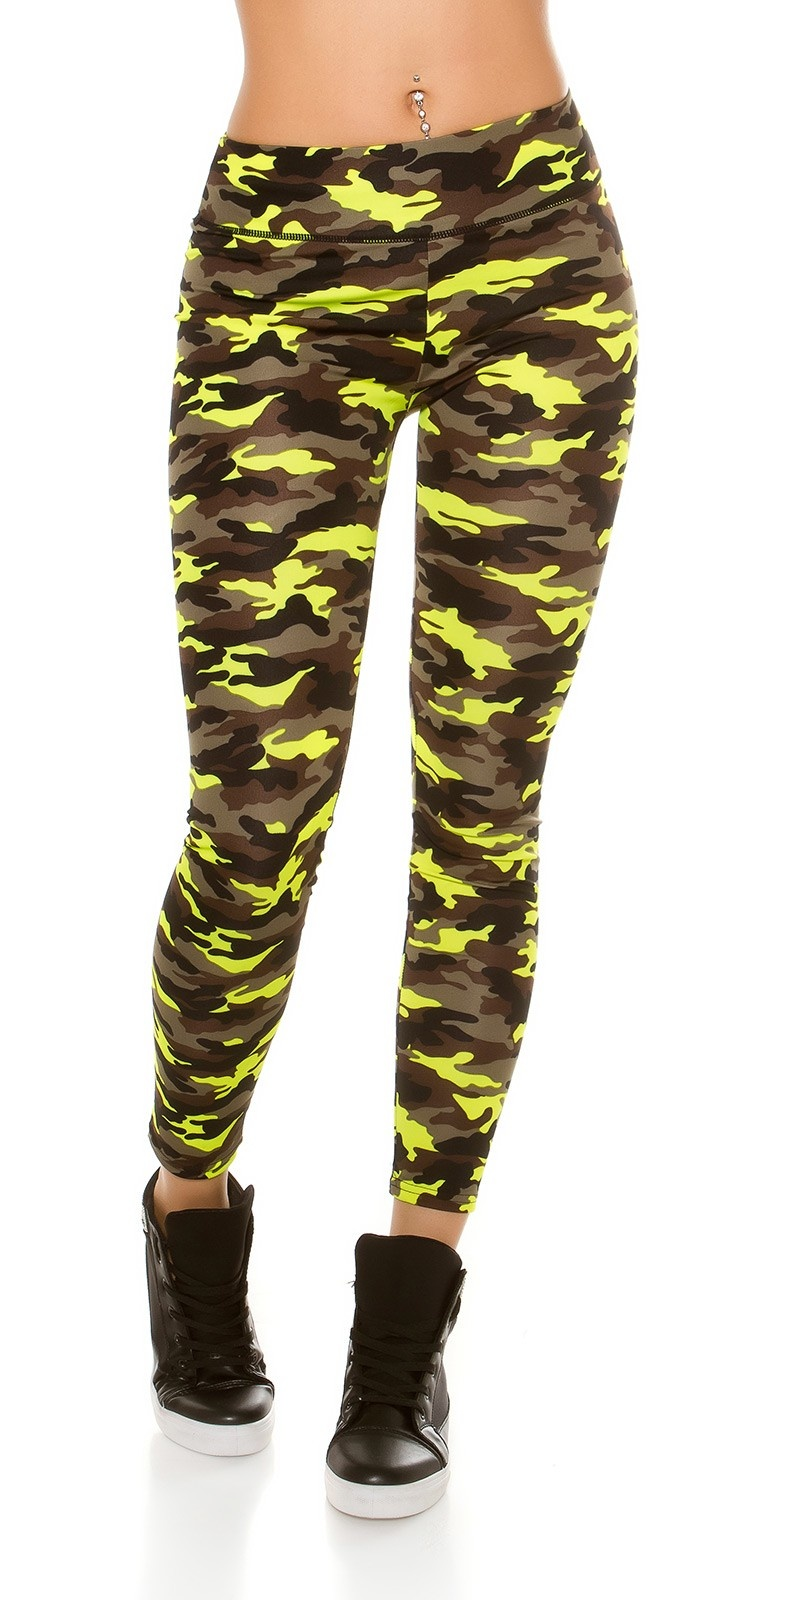 Trendy Workout Leggings in Camouflage Neonyellow